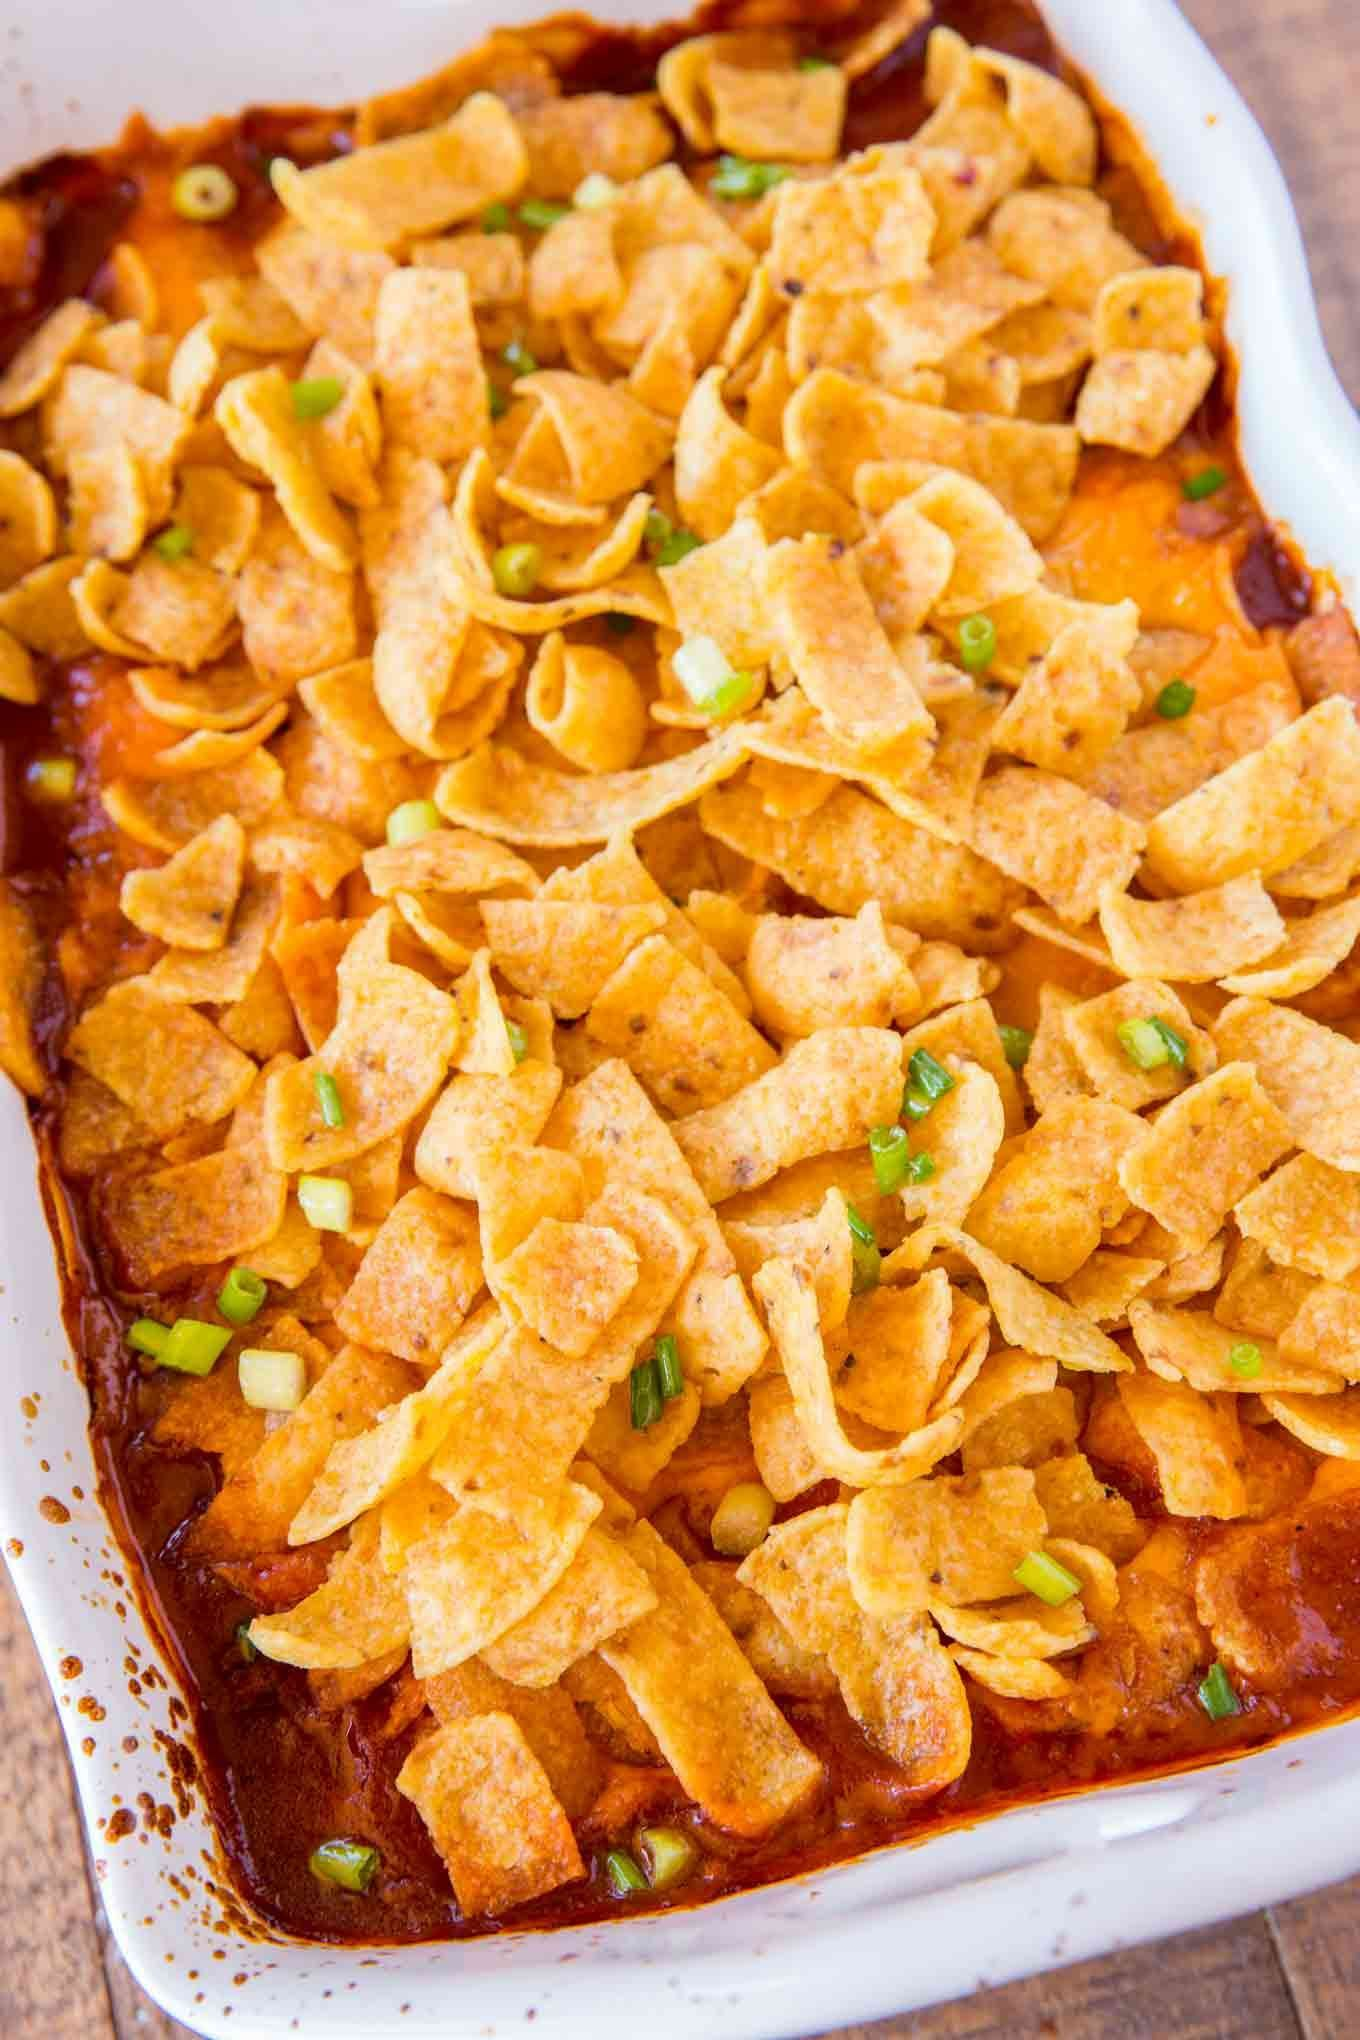 Dinnerthendessert Kidfriendly Childhood Casserole Enchilada Favorite Crunchy Ground Fritos Crispy Cheese F Beef Casserole Recipes Frito Pie Recipes